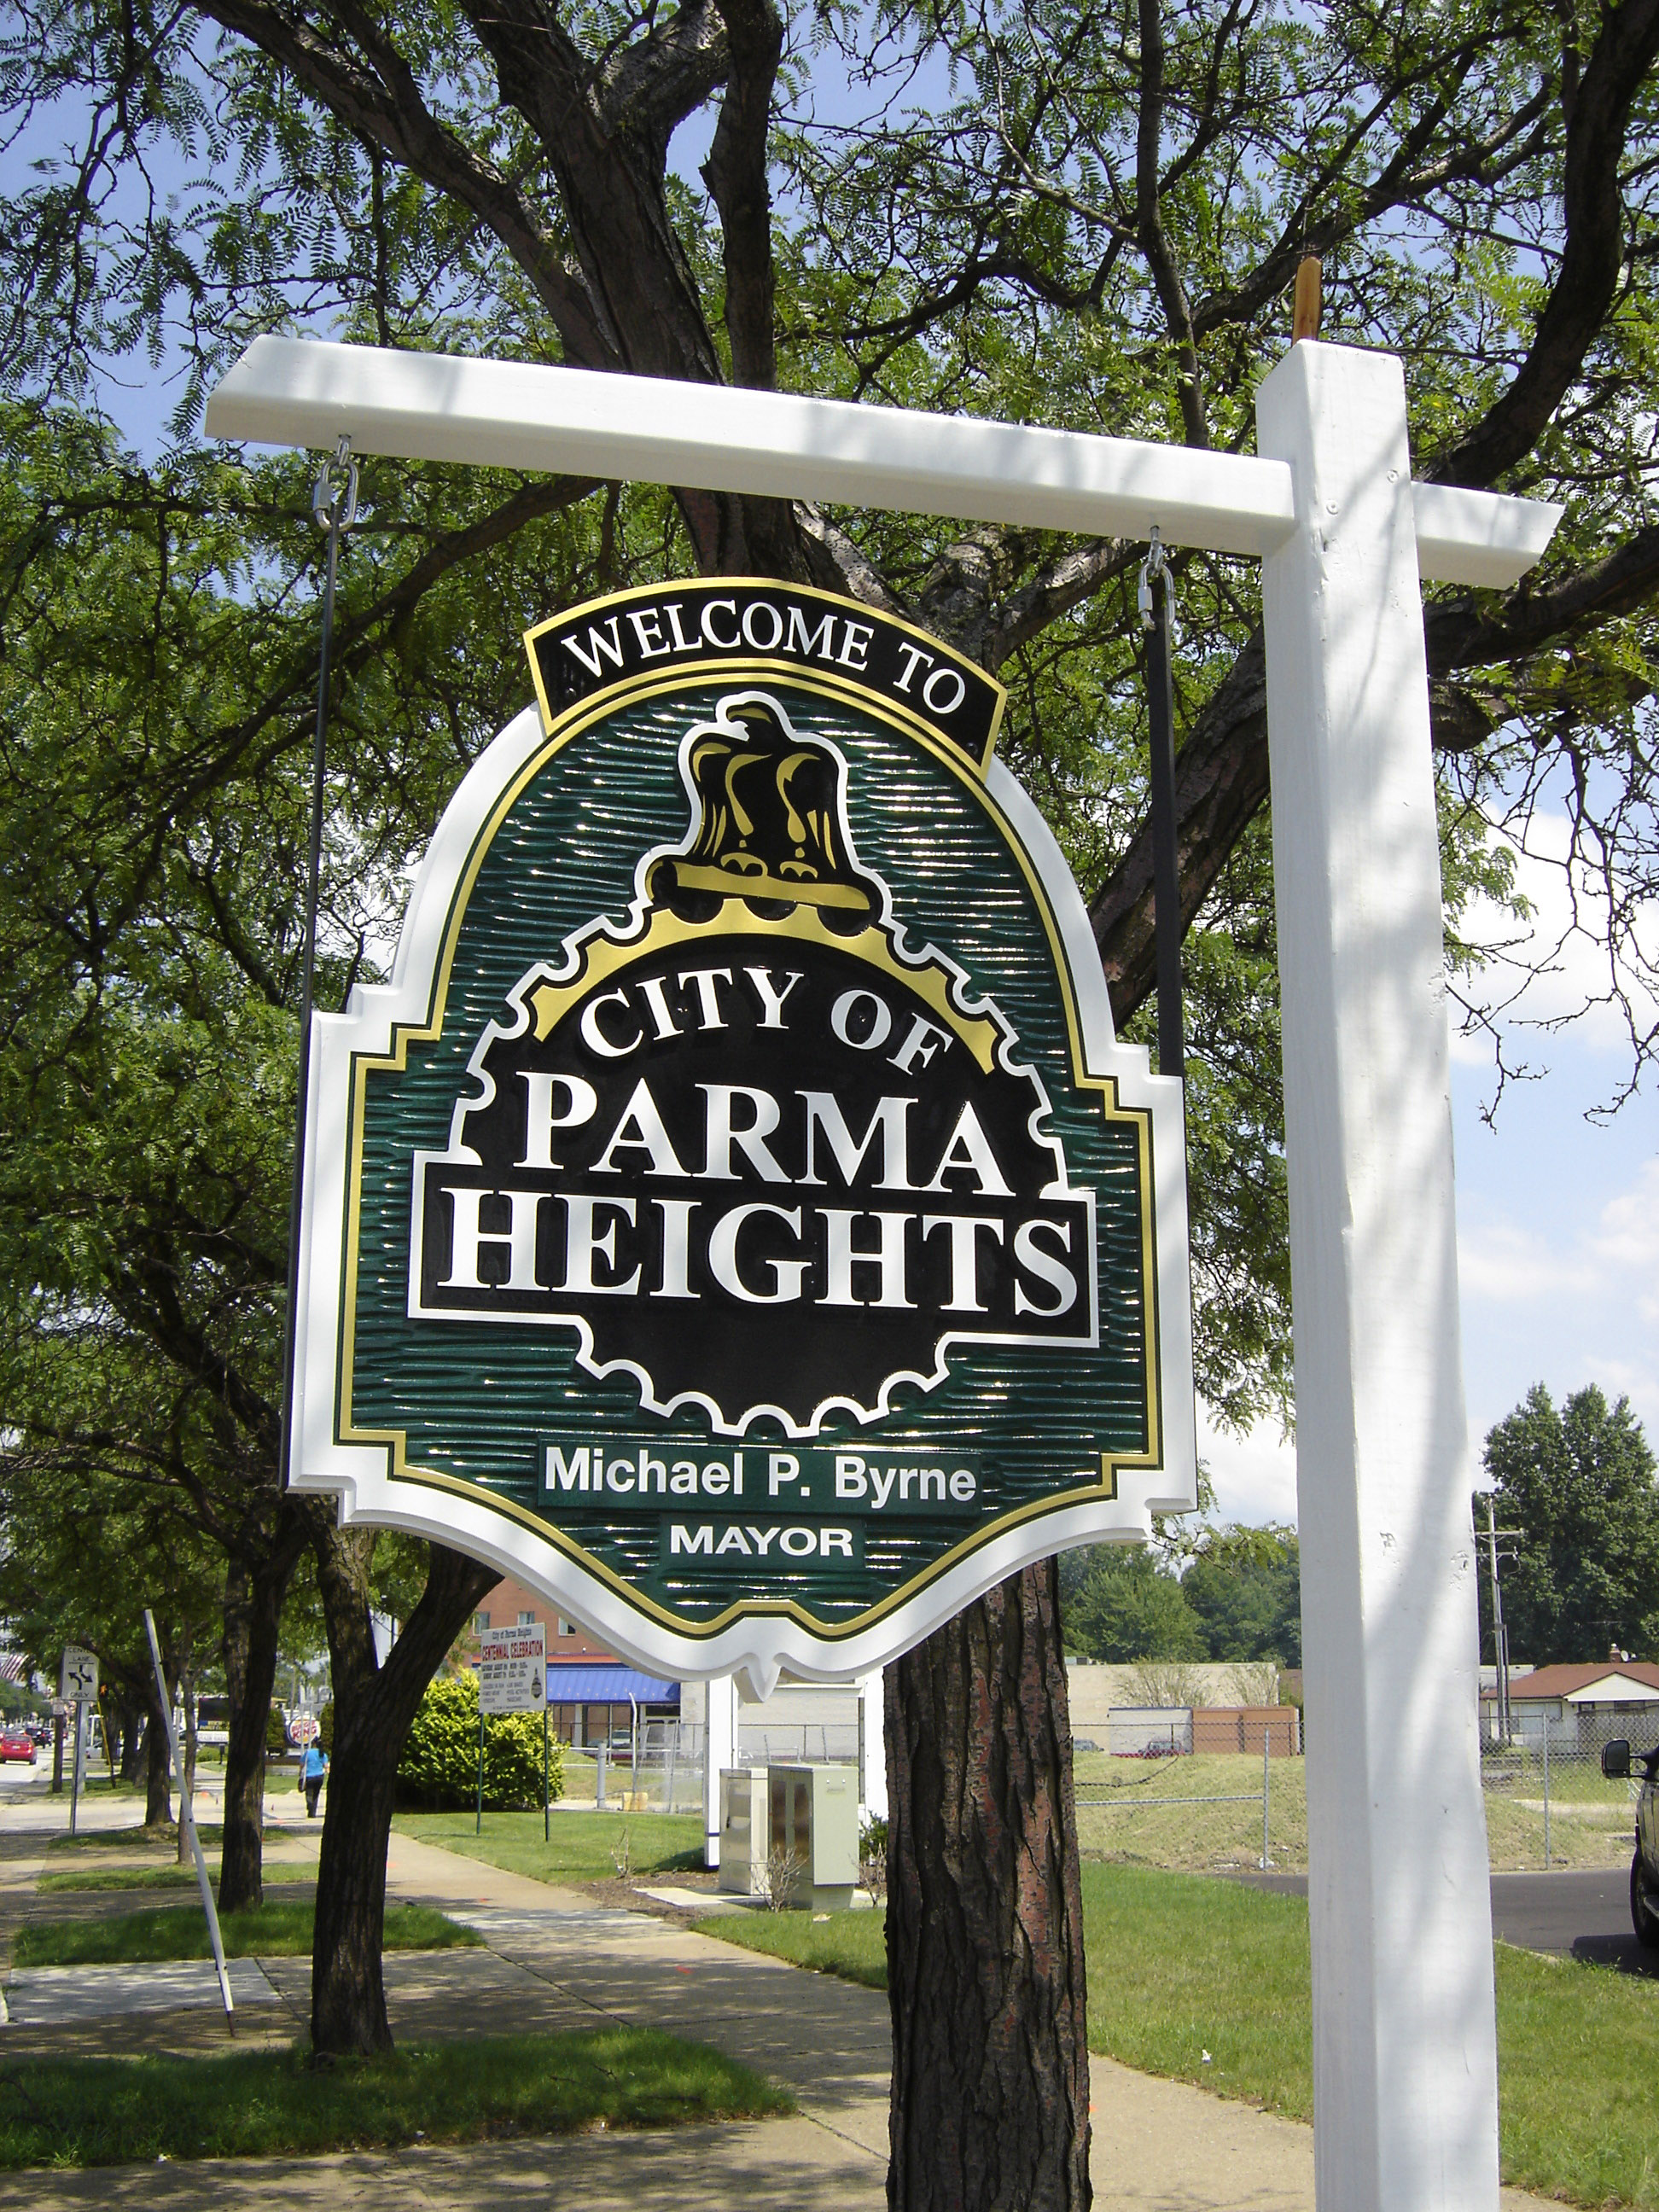 Parma Heights